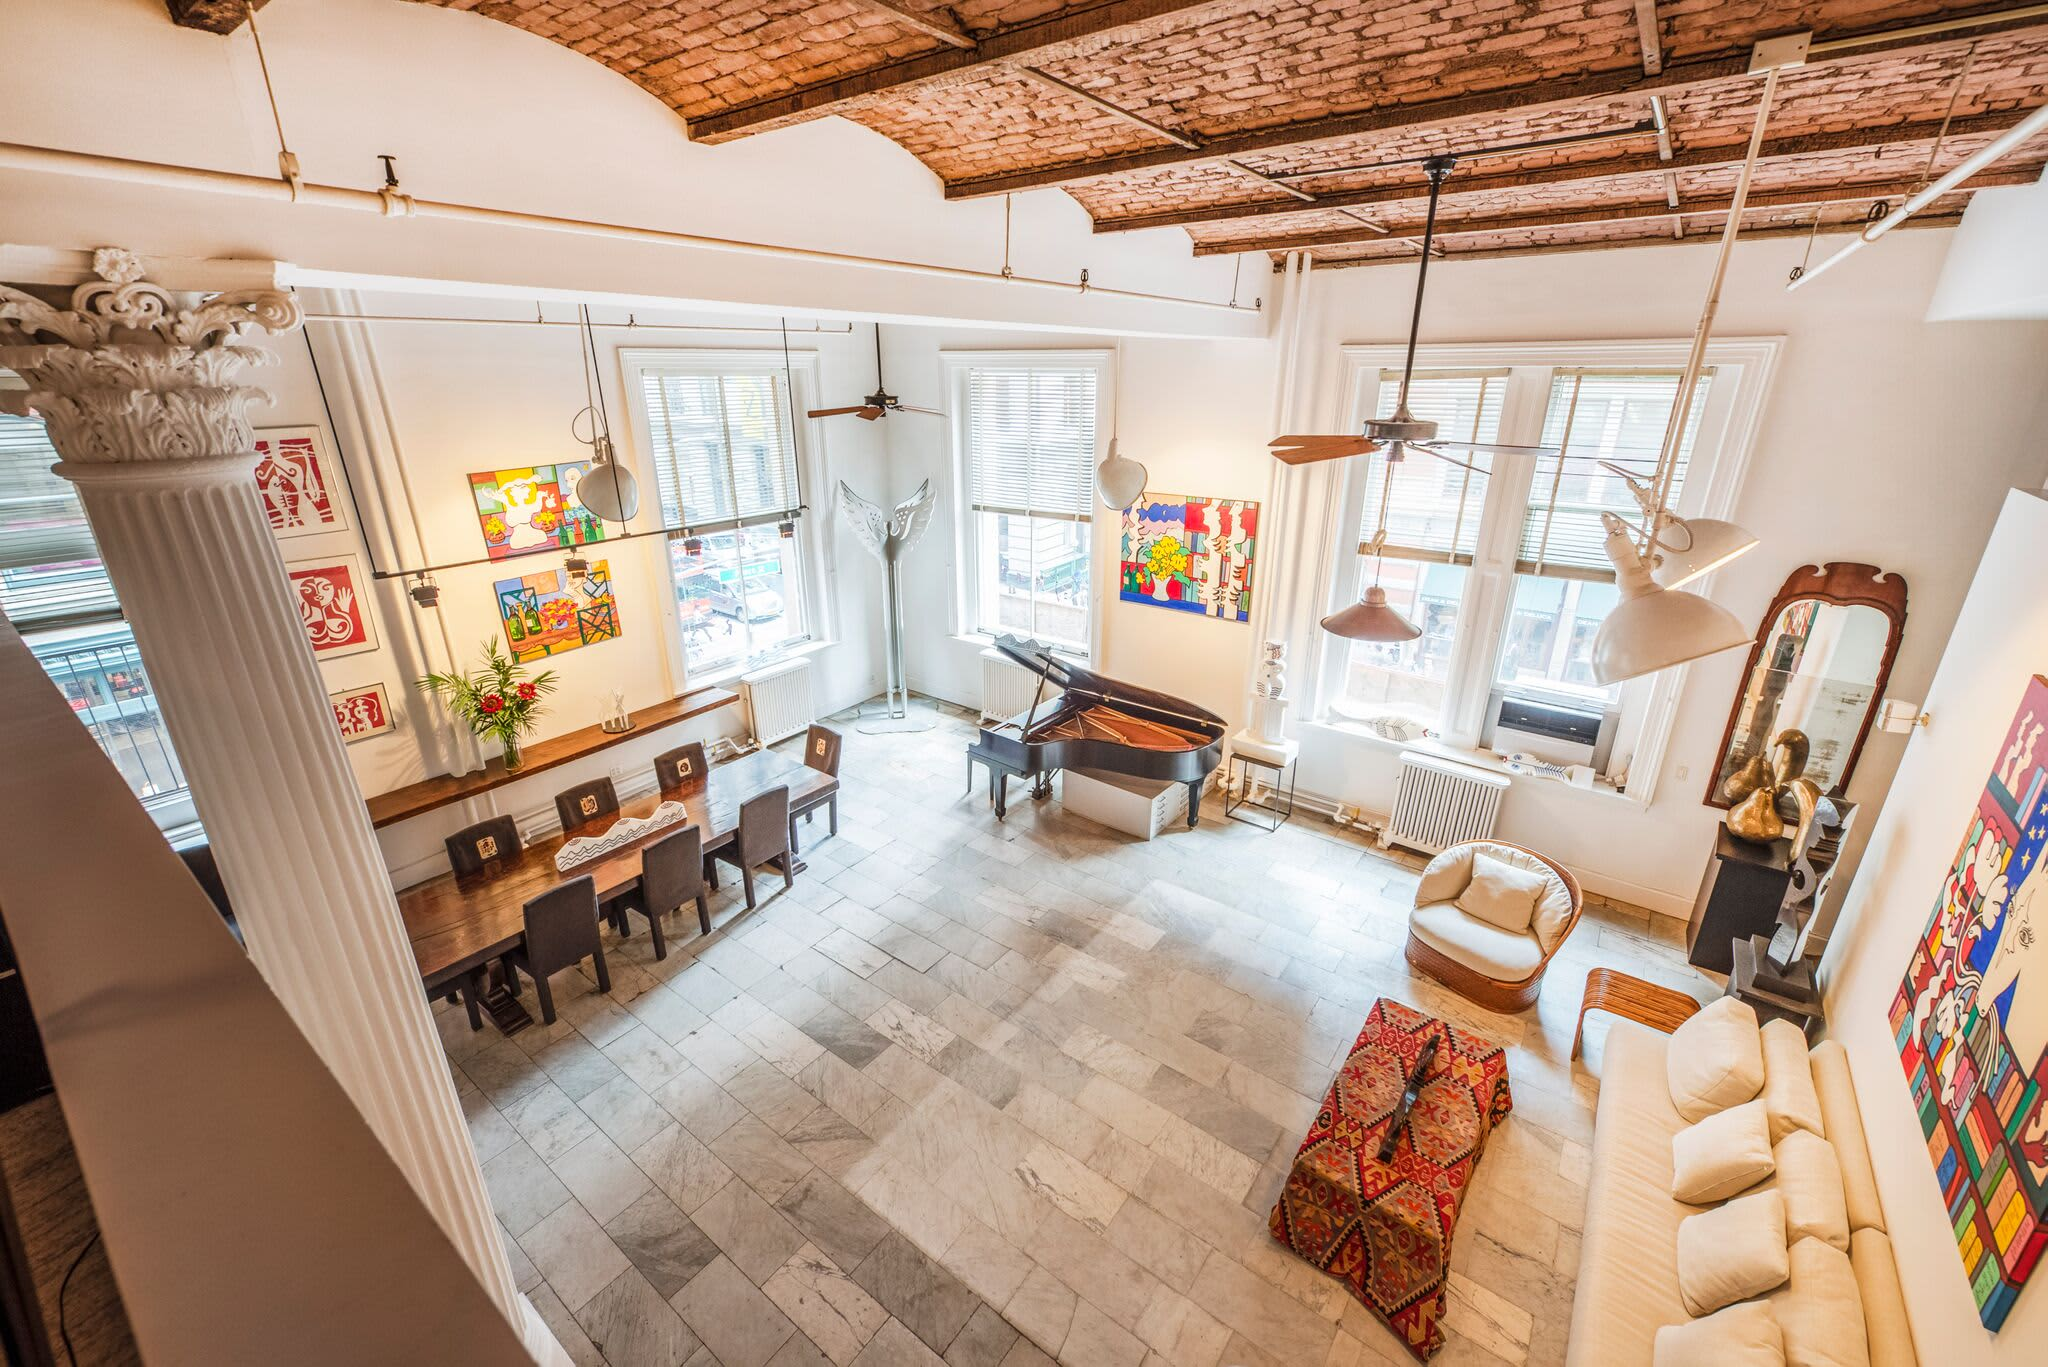 The loft from MTV's 'Real World: New York' is for sale for $7.5 million — take a look inside thumbnail